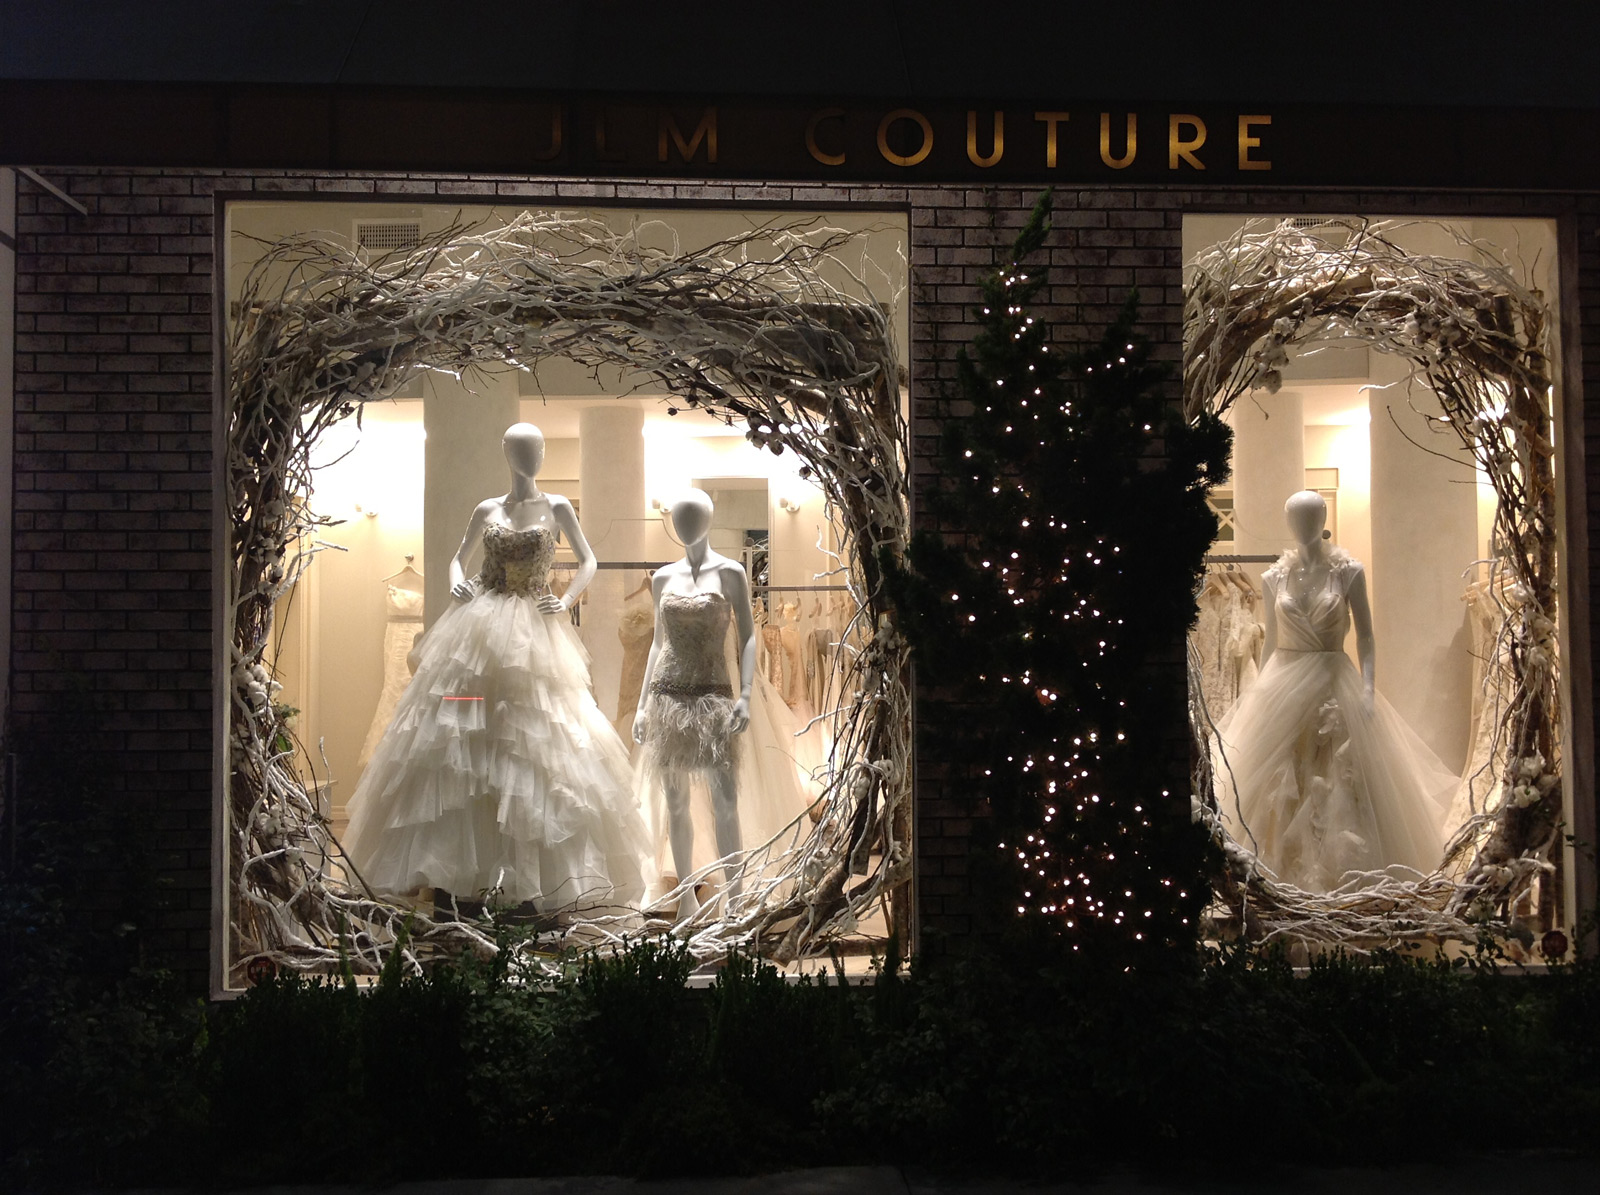 Jim Couture brings the purity and innocence into the window display with those white dresses for brides and with the big nest placed on the window.